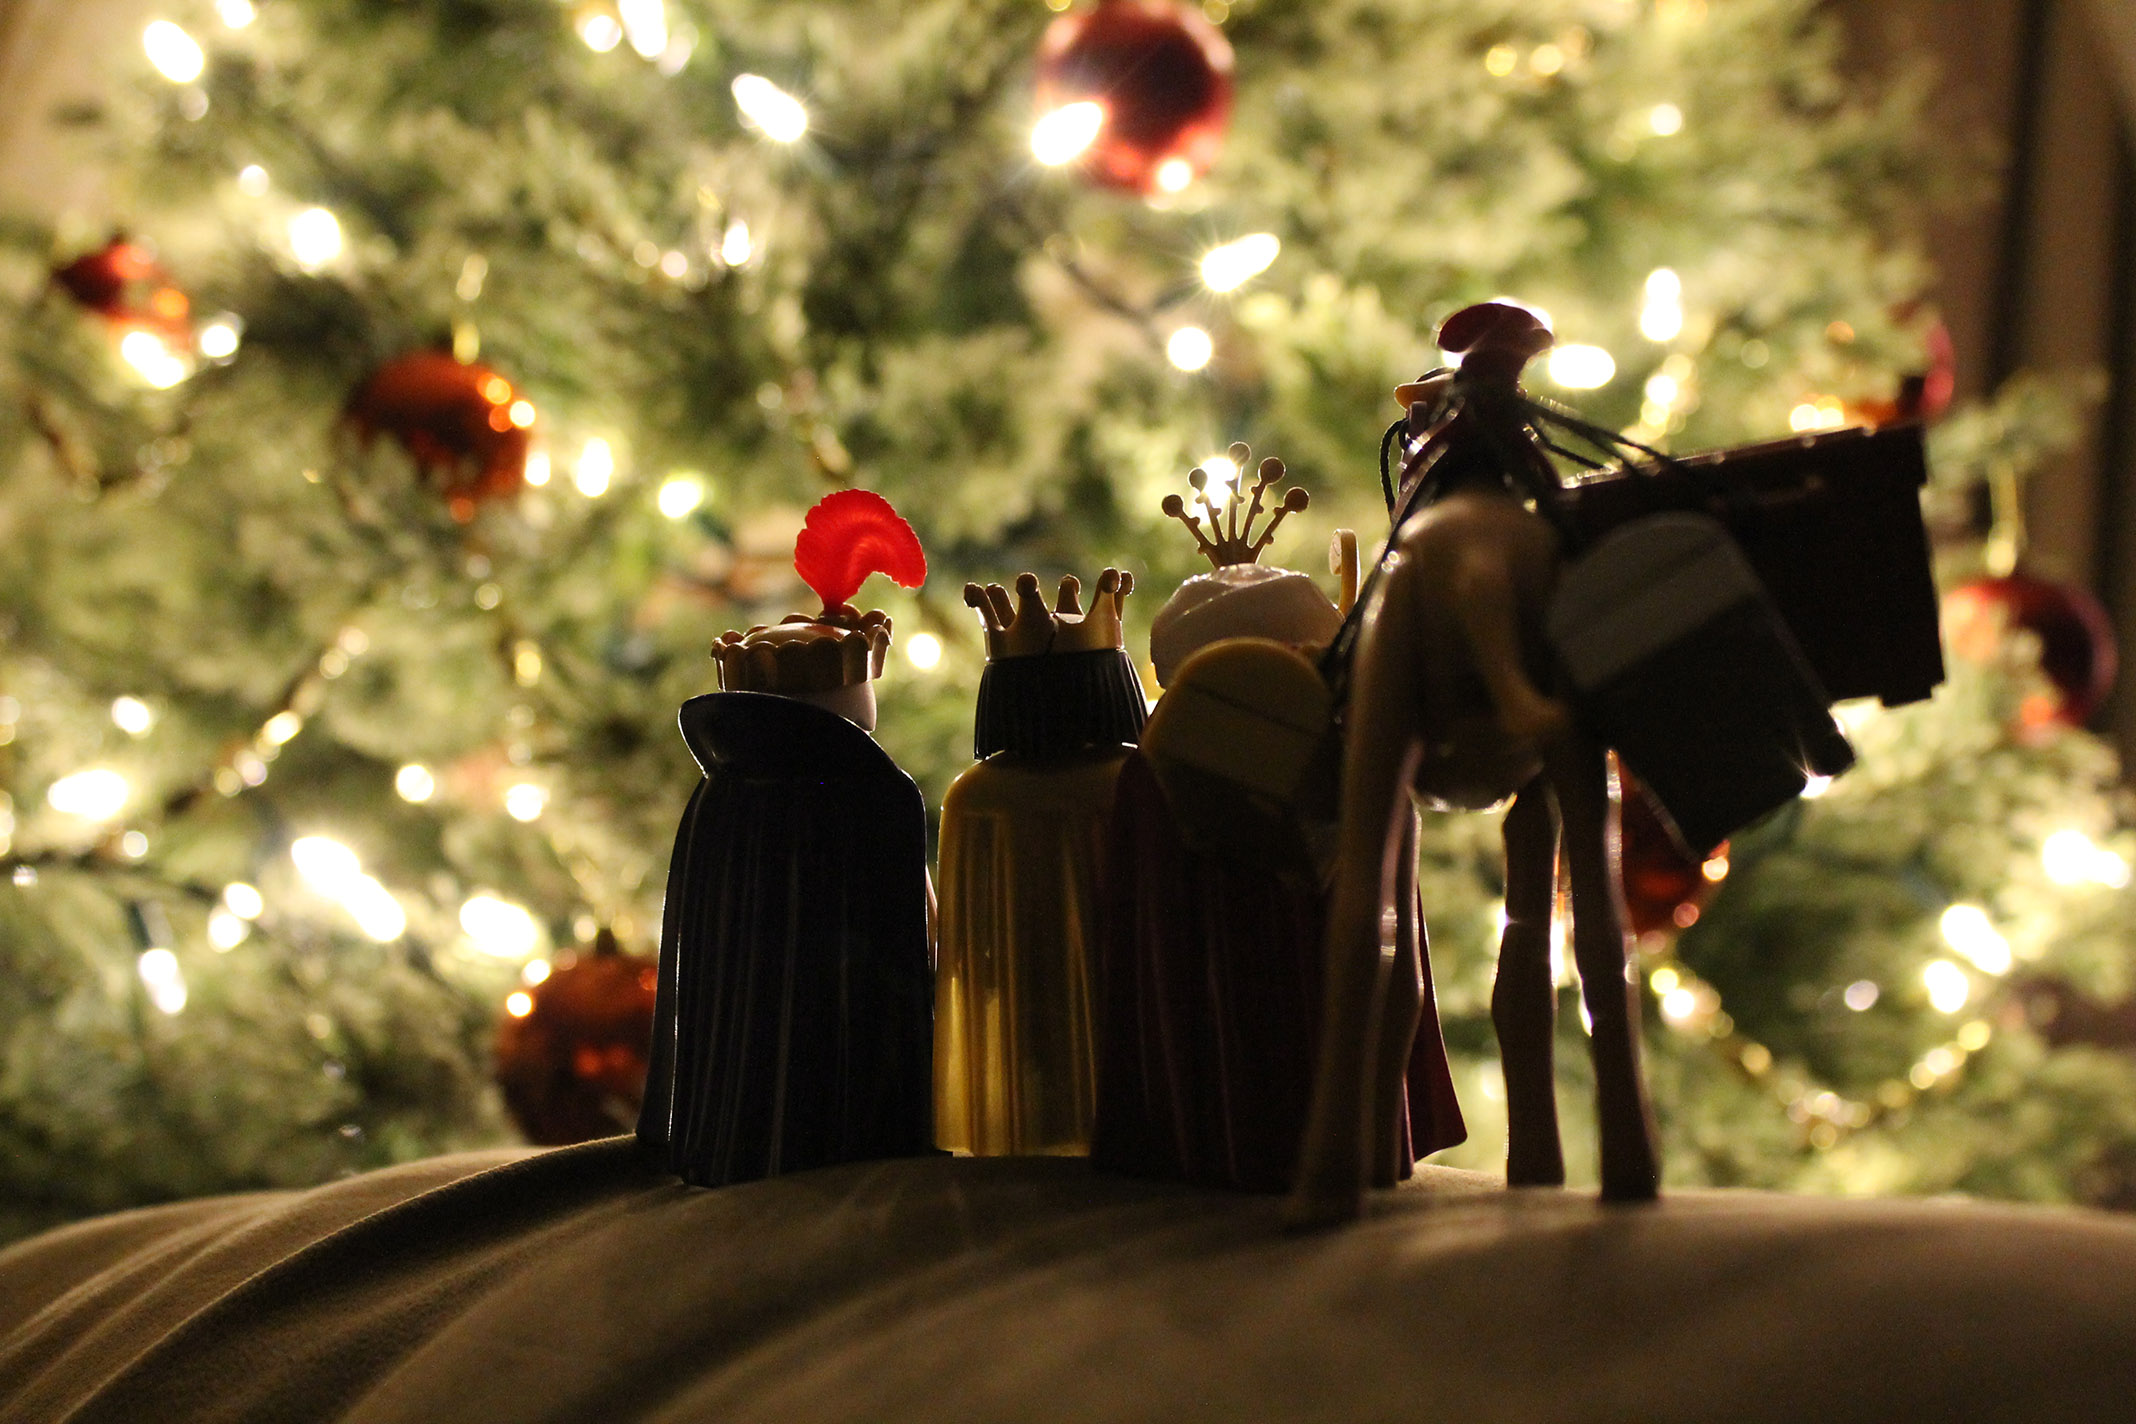 The three wisemen, Balthazar, Melelchior, and Gaspar, gaze upon an illuminated Christmas Tree.